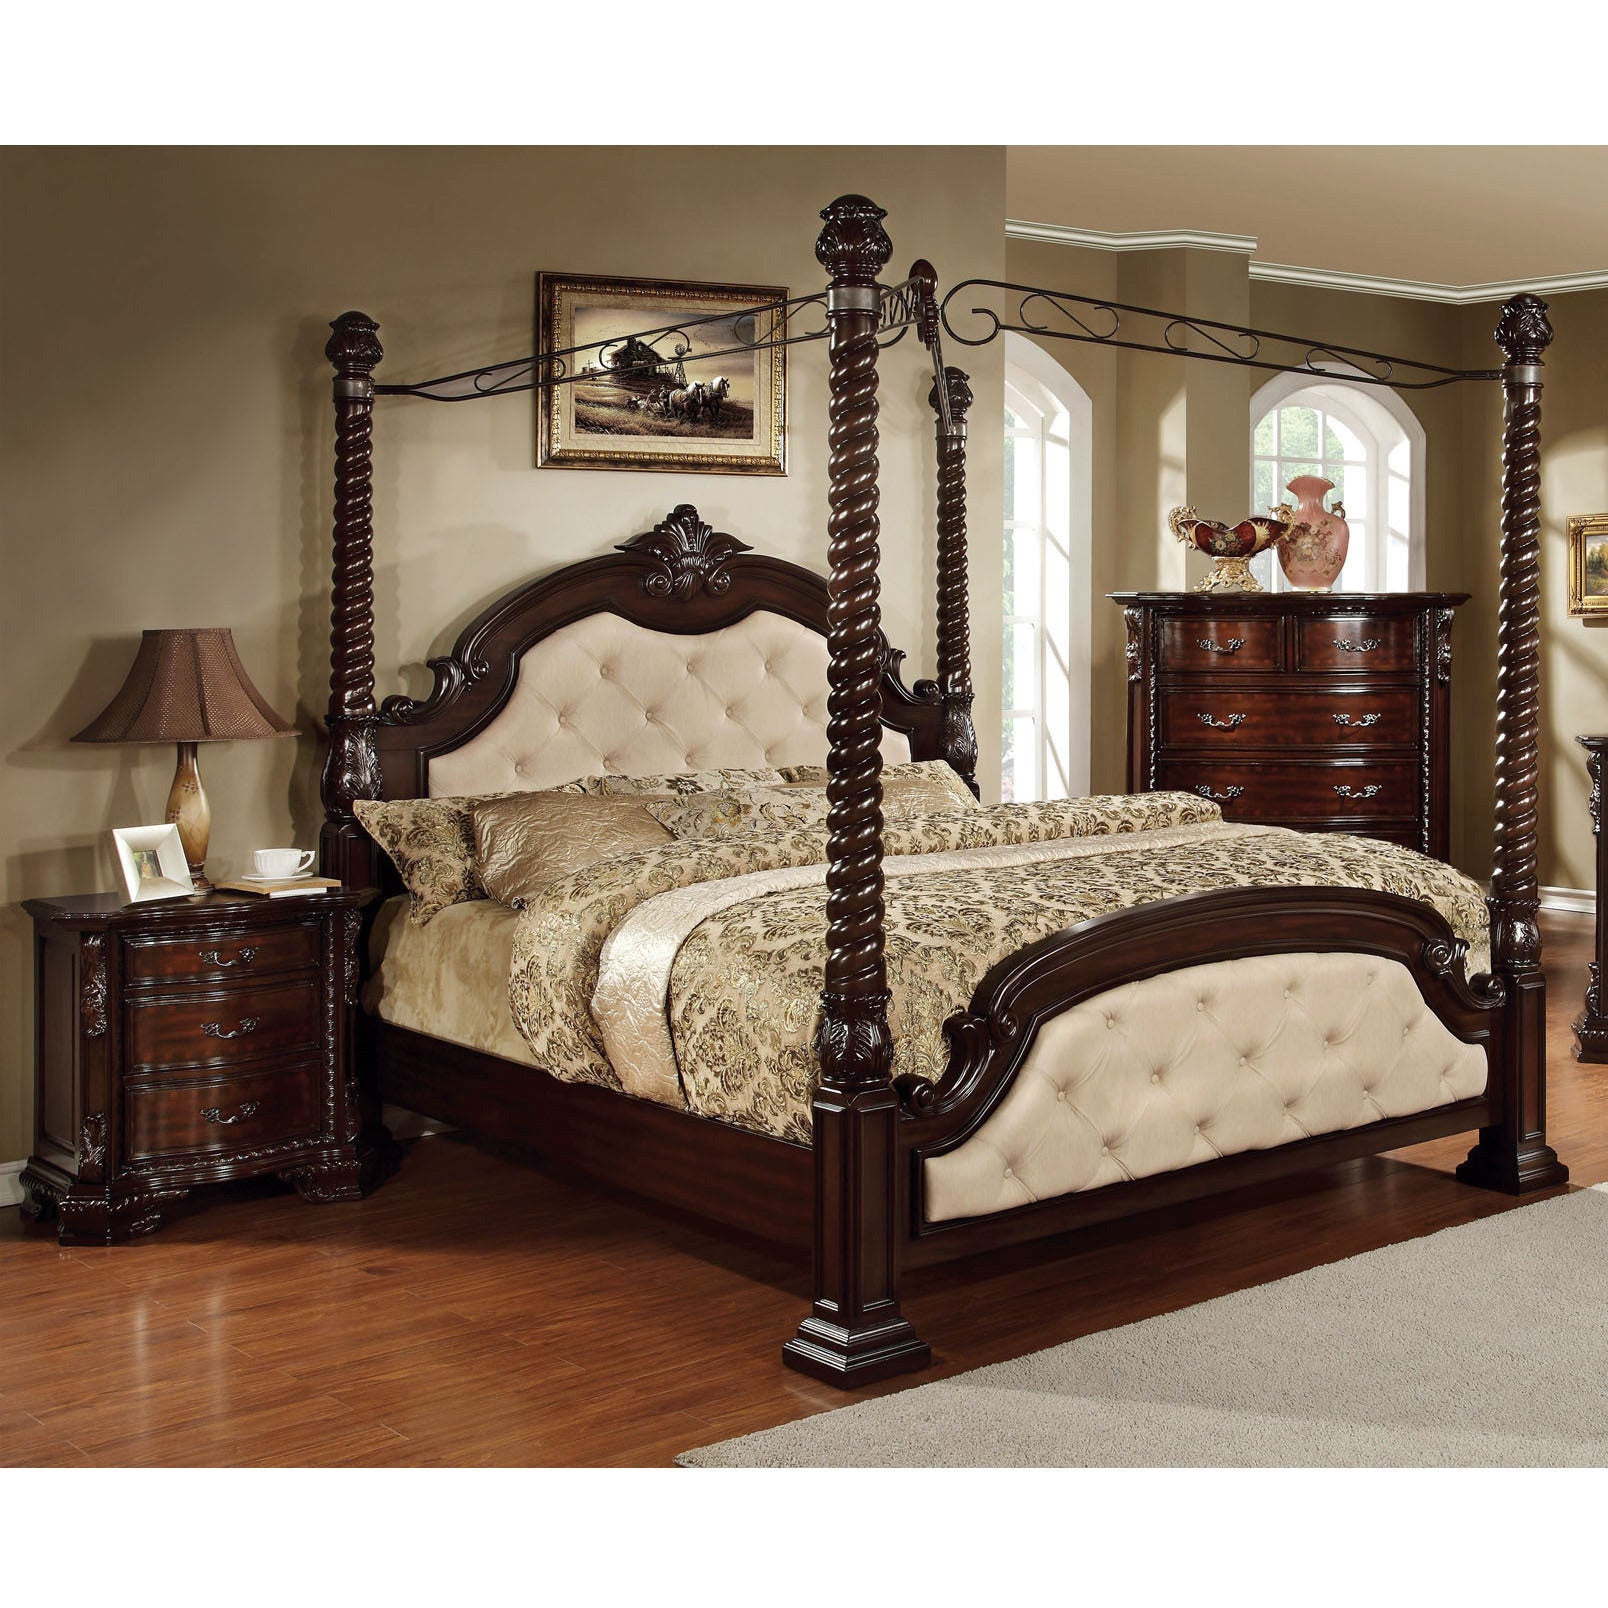 Kassania Traditional Poster 3-piece Canopy Bedroom Set  sc 1 st  Overstock.com & Buy Canopy Bed Bedroom Sets Online at Overstock | Our Best Bedroom ...